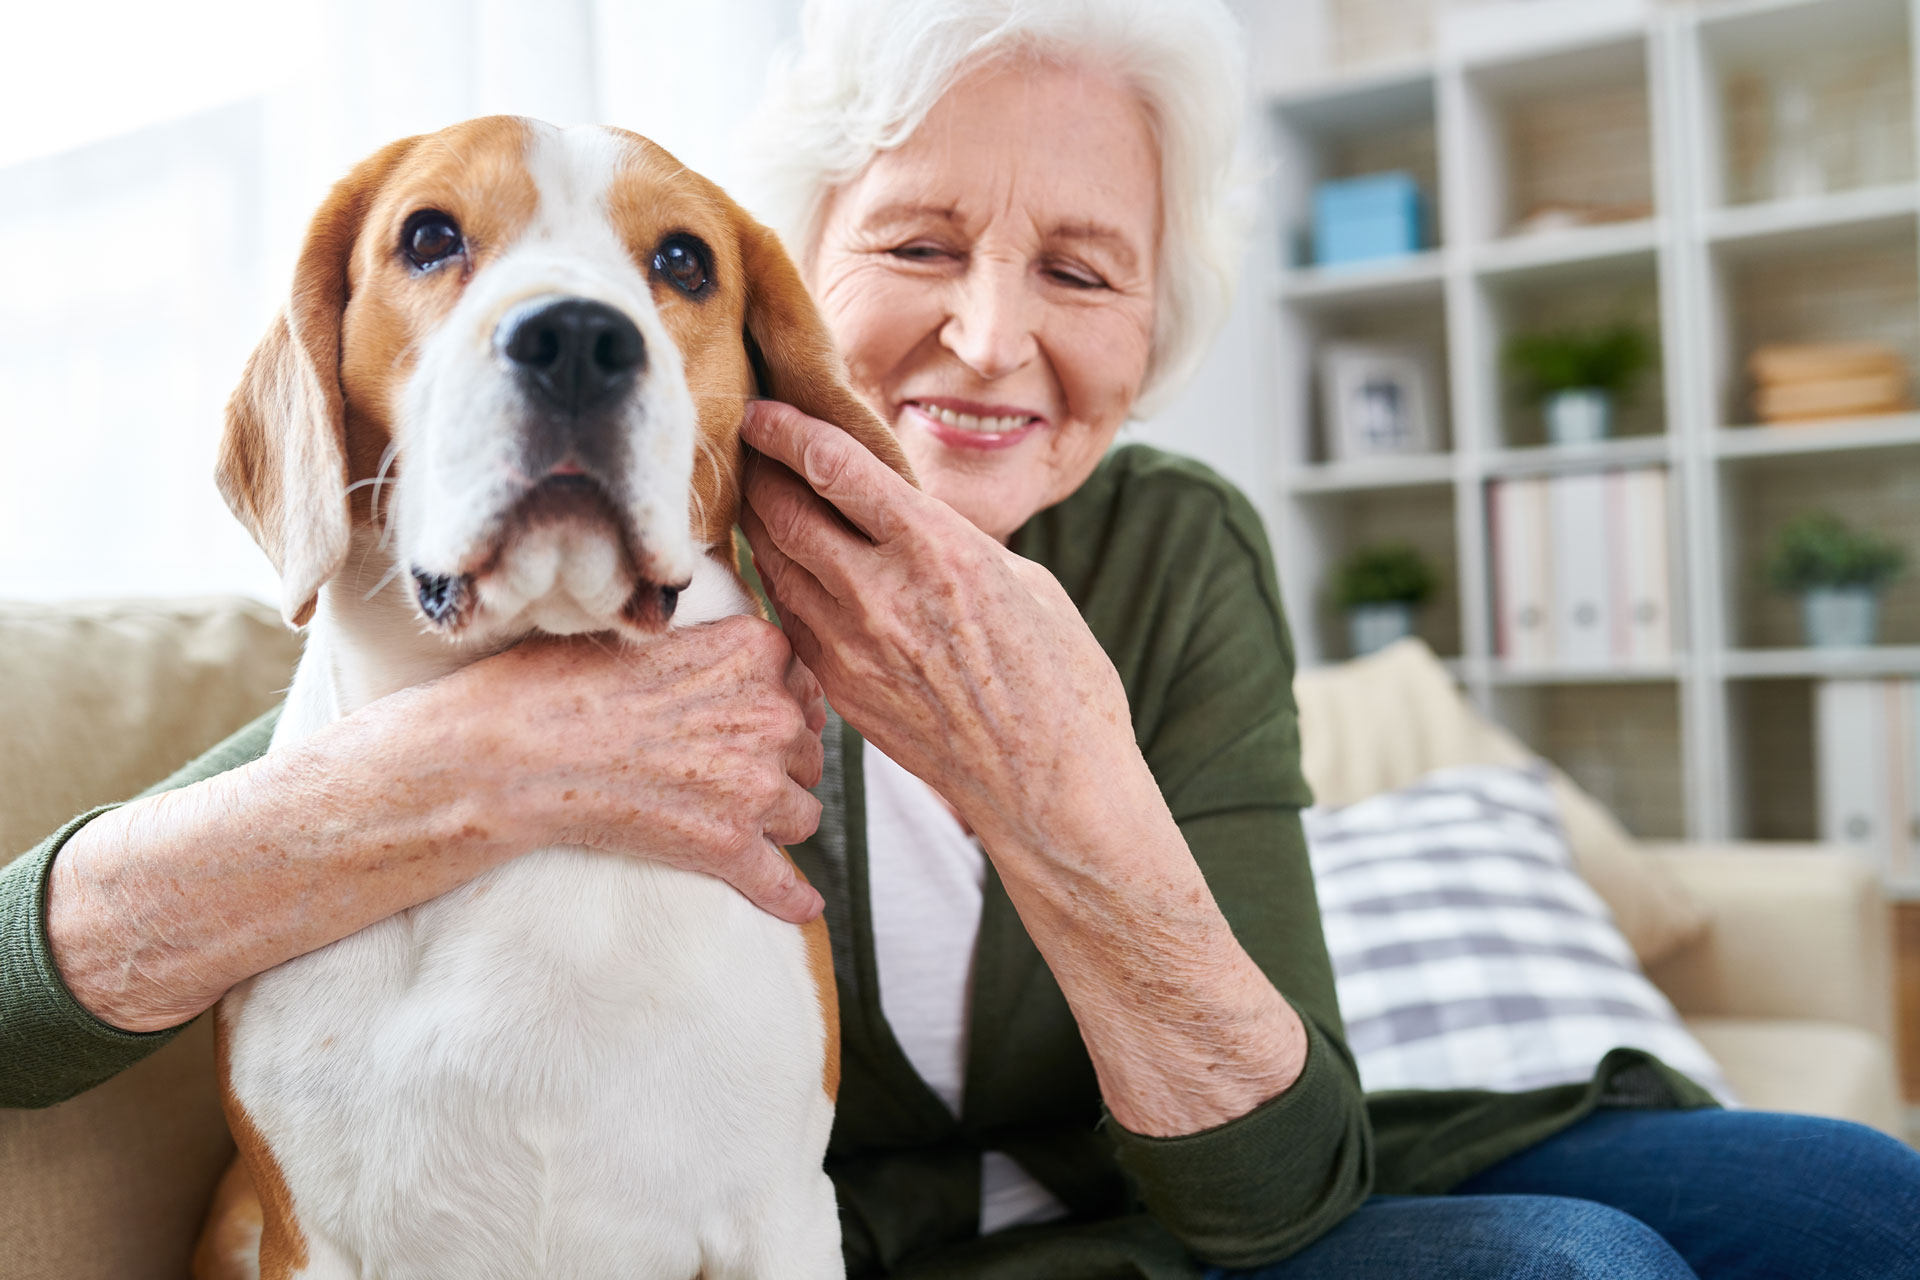 Emotional Support Animal (ESA) Laws Guide